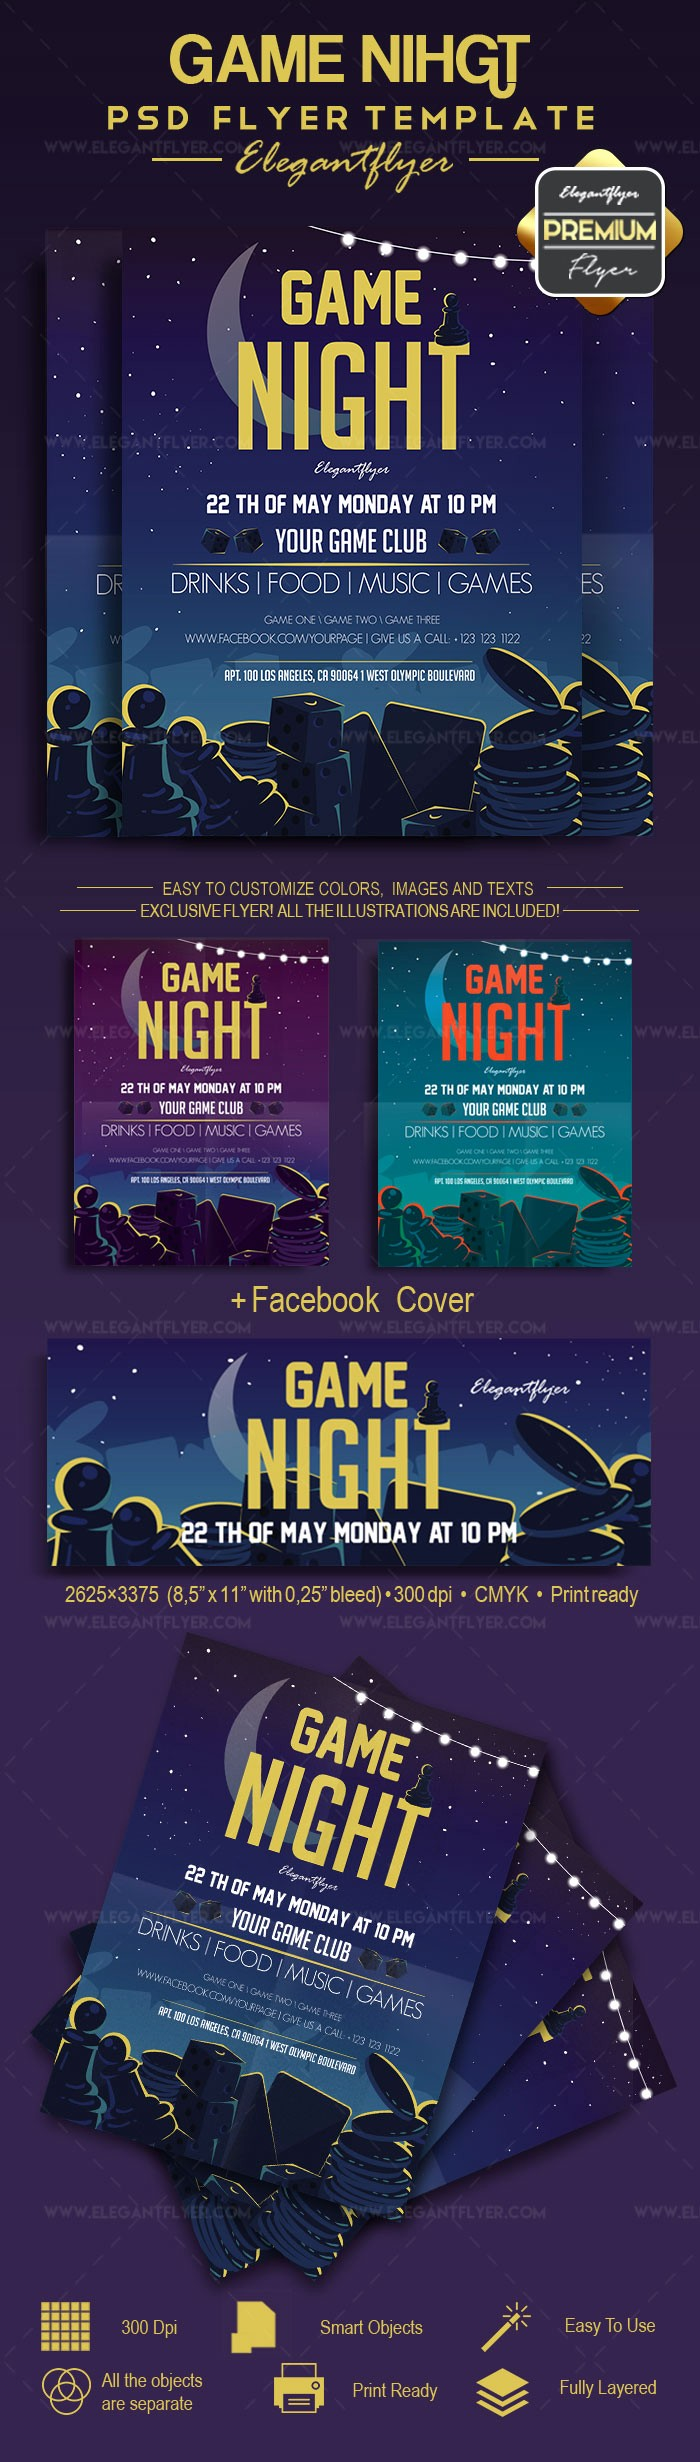 Free Game Night Flyer Template Inspirational Game Night – Flyer Psd Template – by Elegantflyer